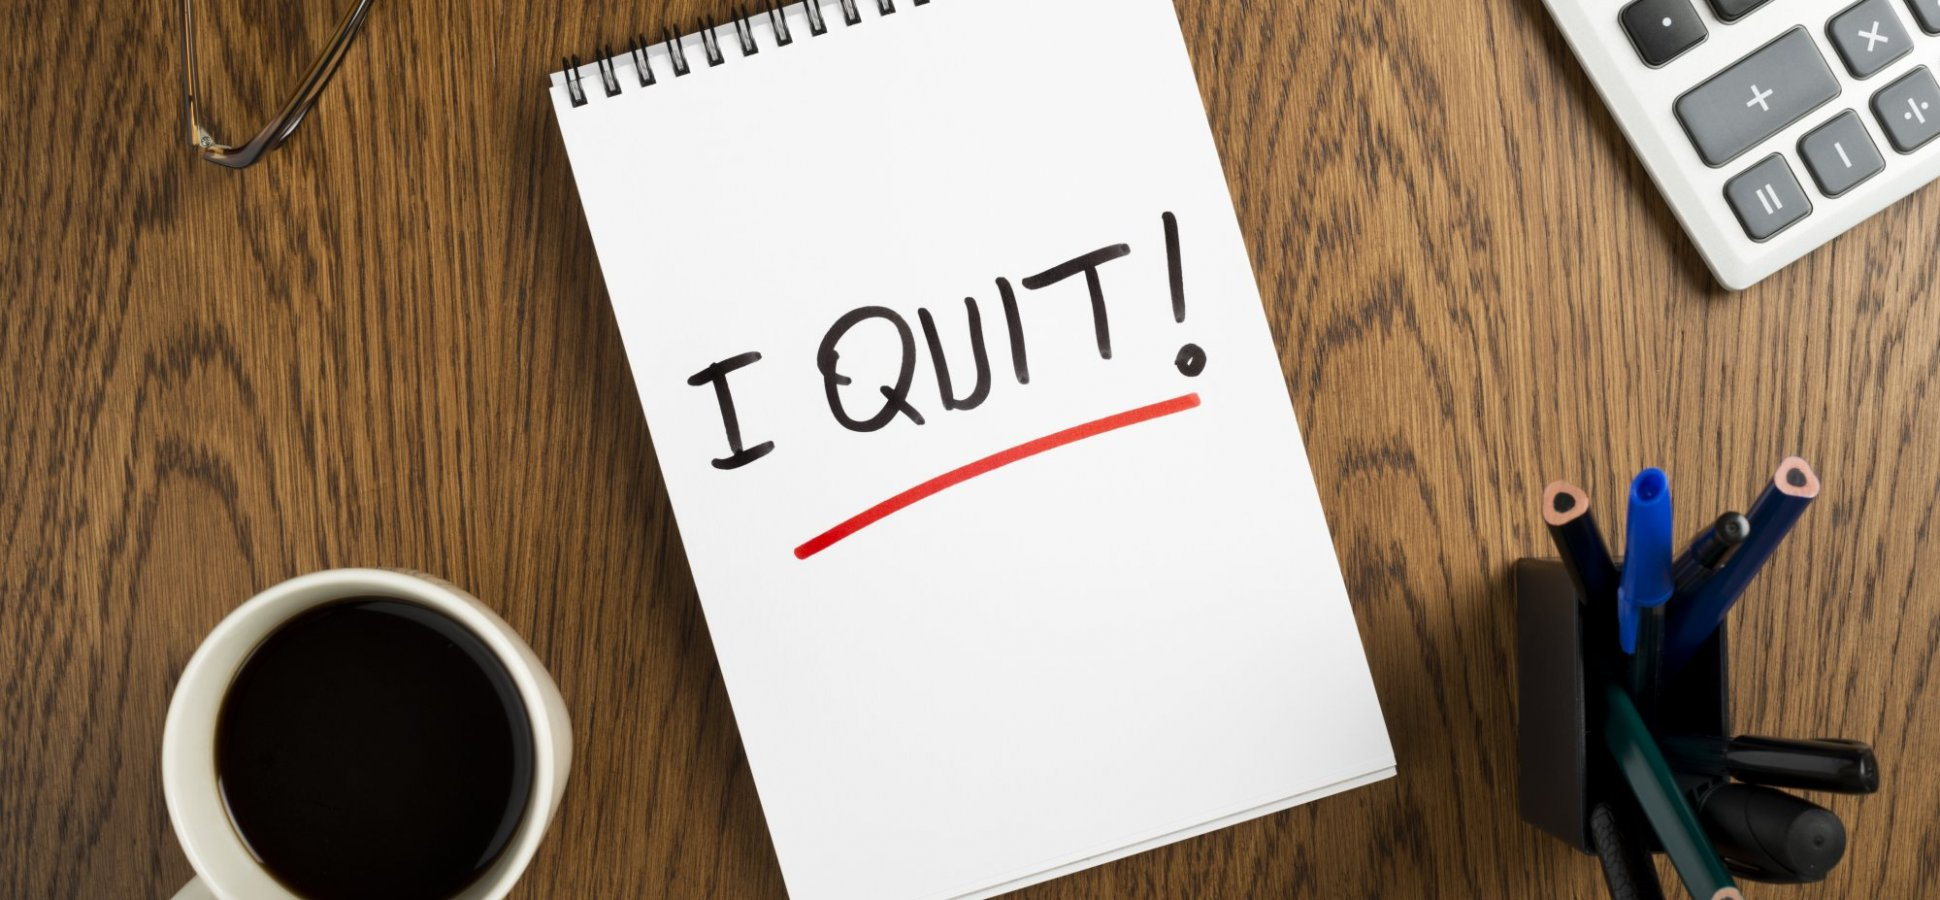 Thinking of Quitting Your Job? Ask These 3 Important Questions First